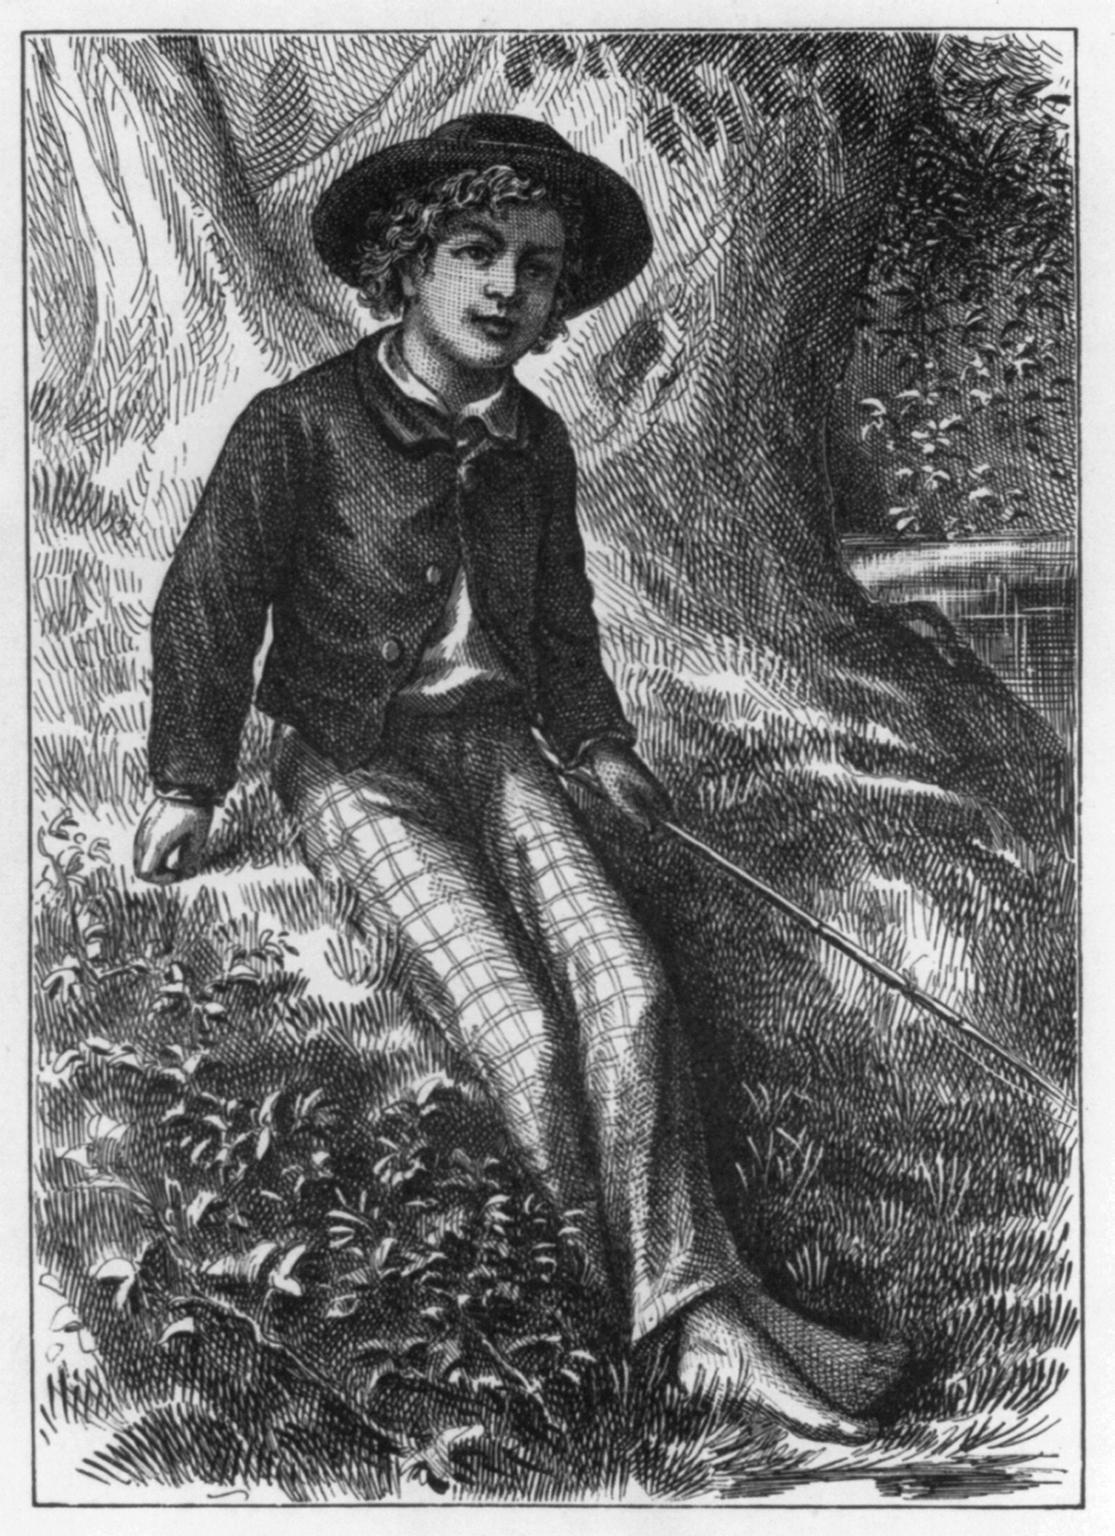 the adventures of tom sawyer huckleberry On this day in 1885, mark twain publishes his famous-and famously controversial-novel the adventures of huckleberry finn twain (the pen name of samuel clemens) first introduced huck finn as the best friend of tom sawyer, hero of his tremendously successful novel the adventures of tom sawyer.